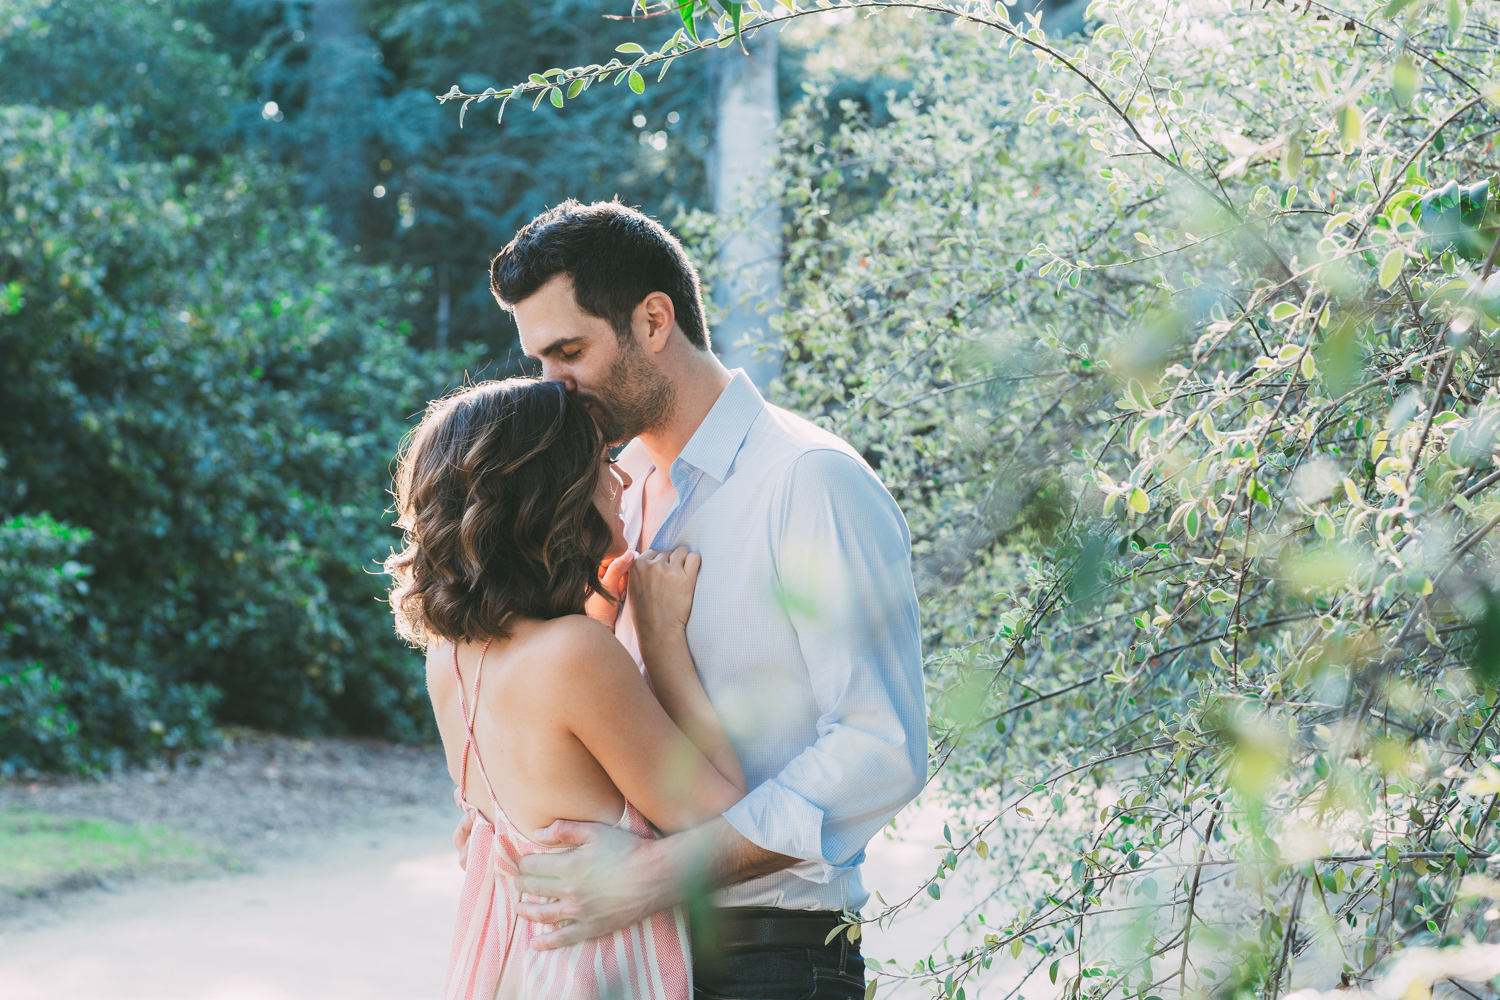 2016_02_21_JasonandYasmines_Engagement-615-Edit.jpg